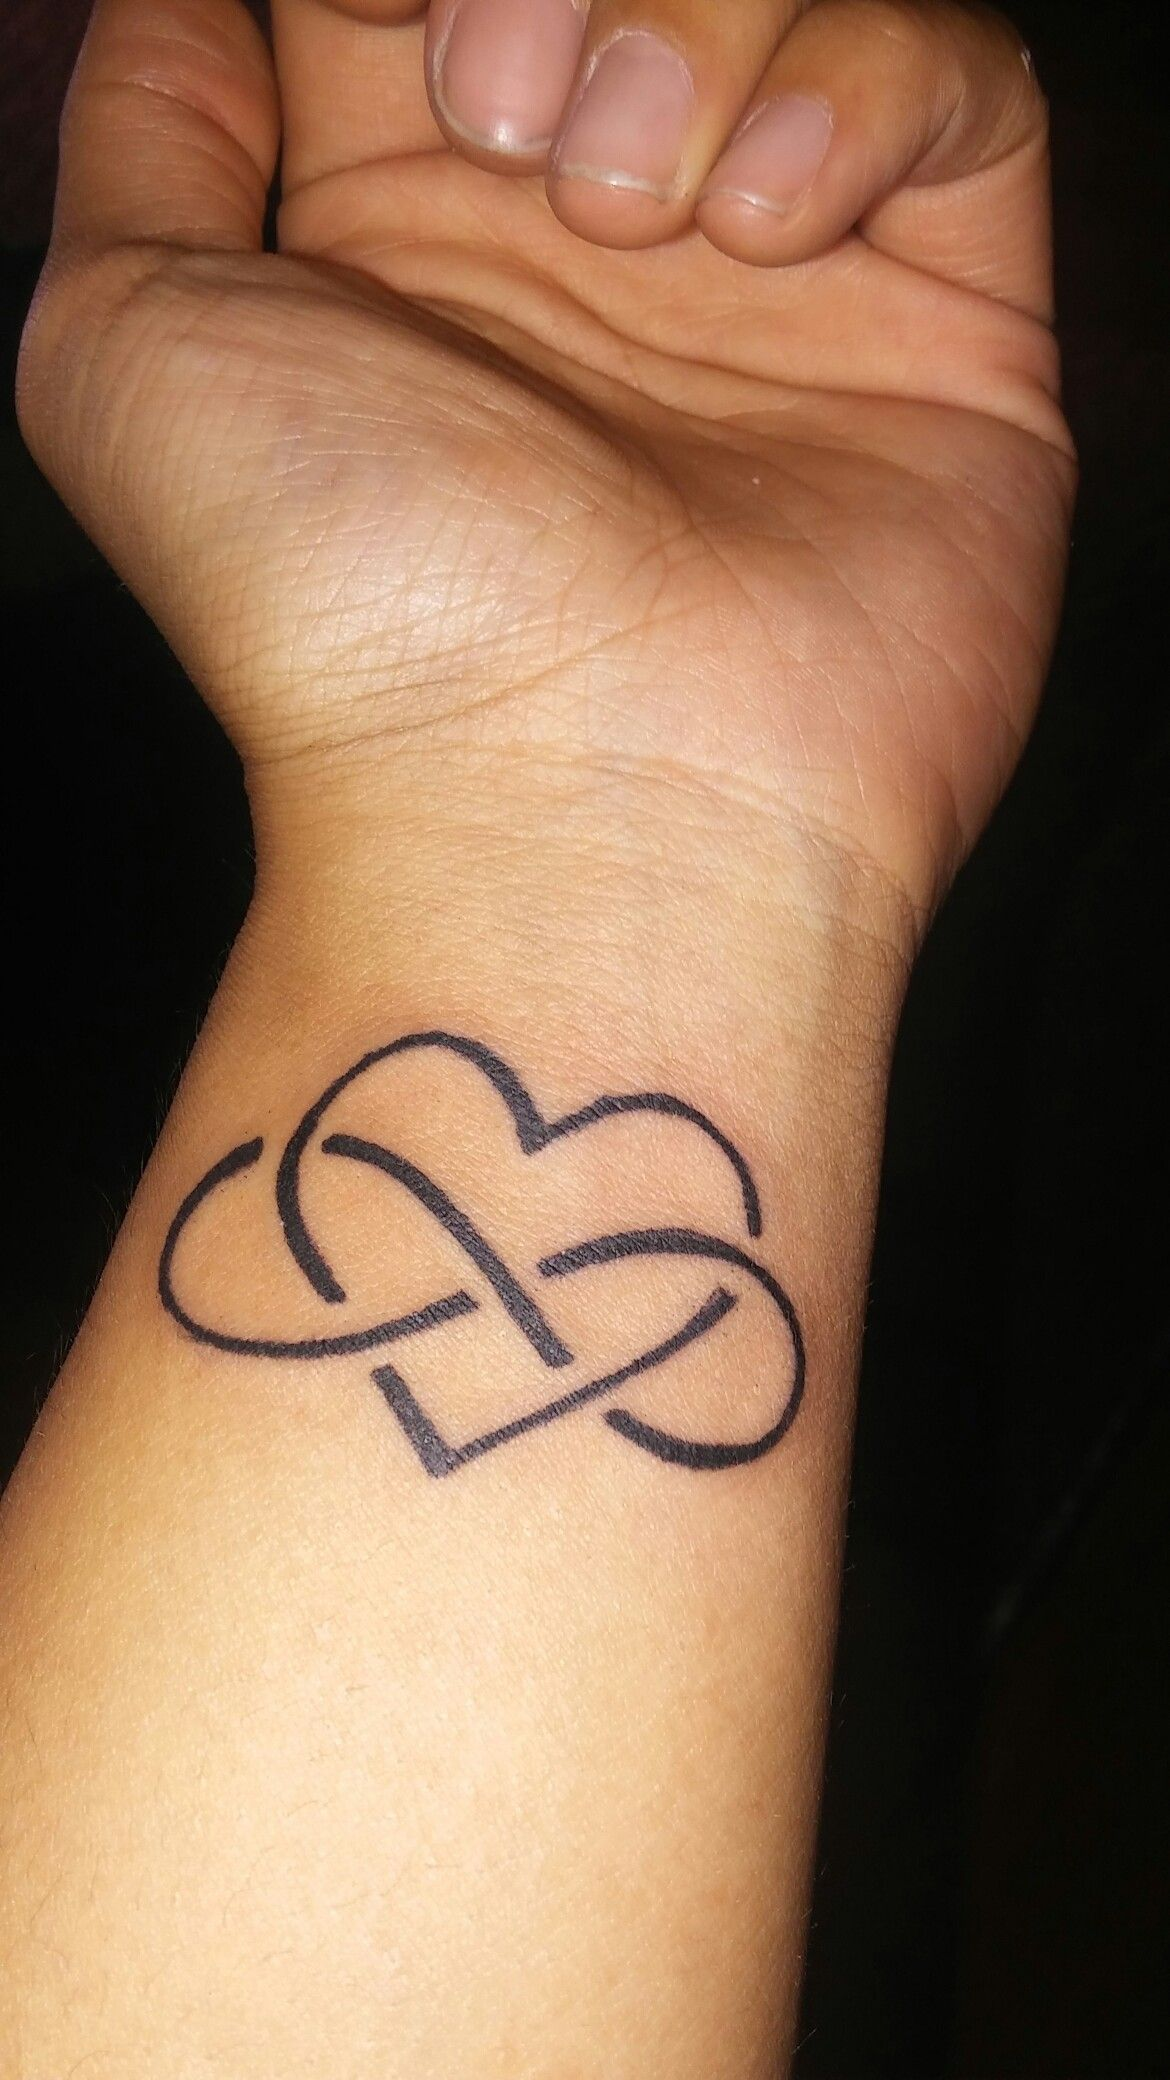 Infinity Love Tattoos Pictures infinity love tattoo on wrist. my first ink | tattoo ideas